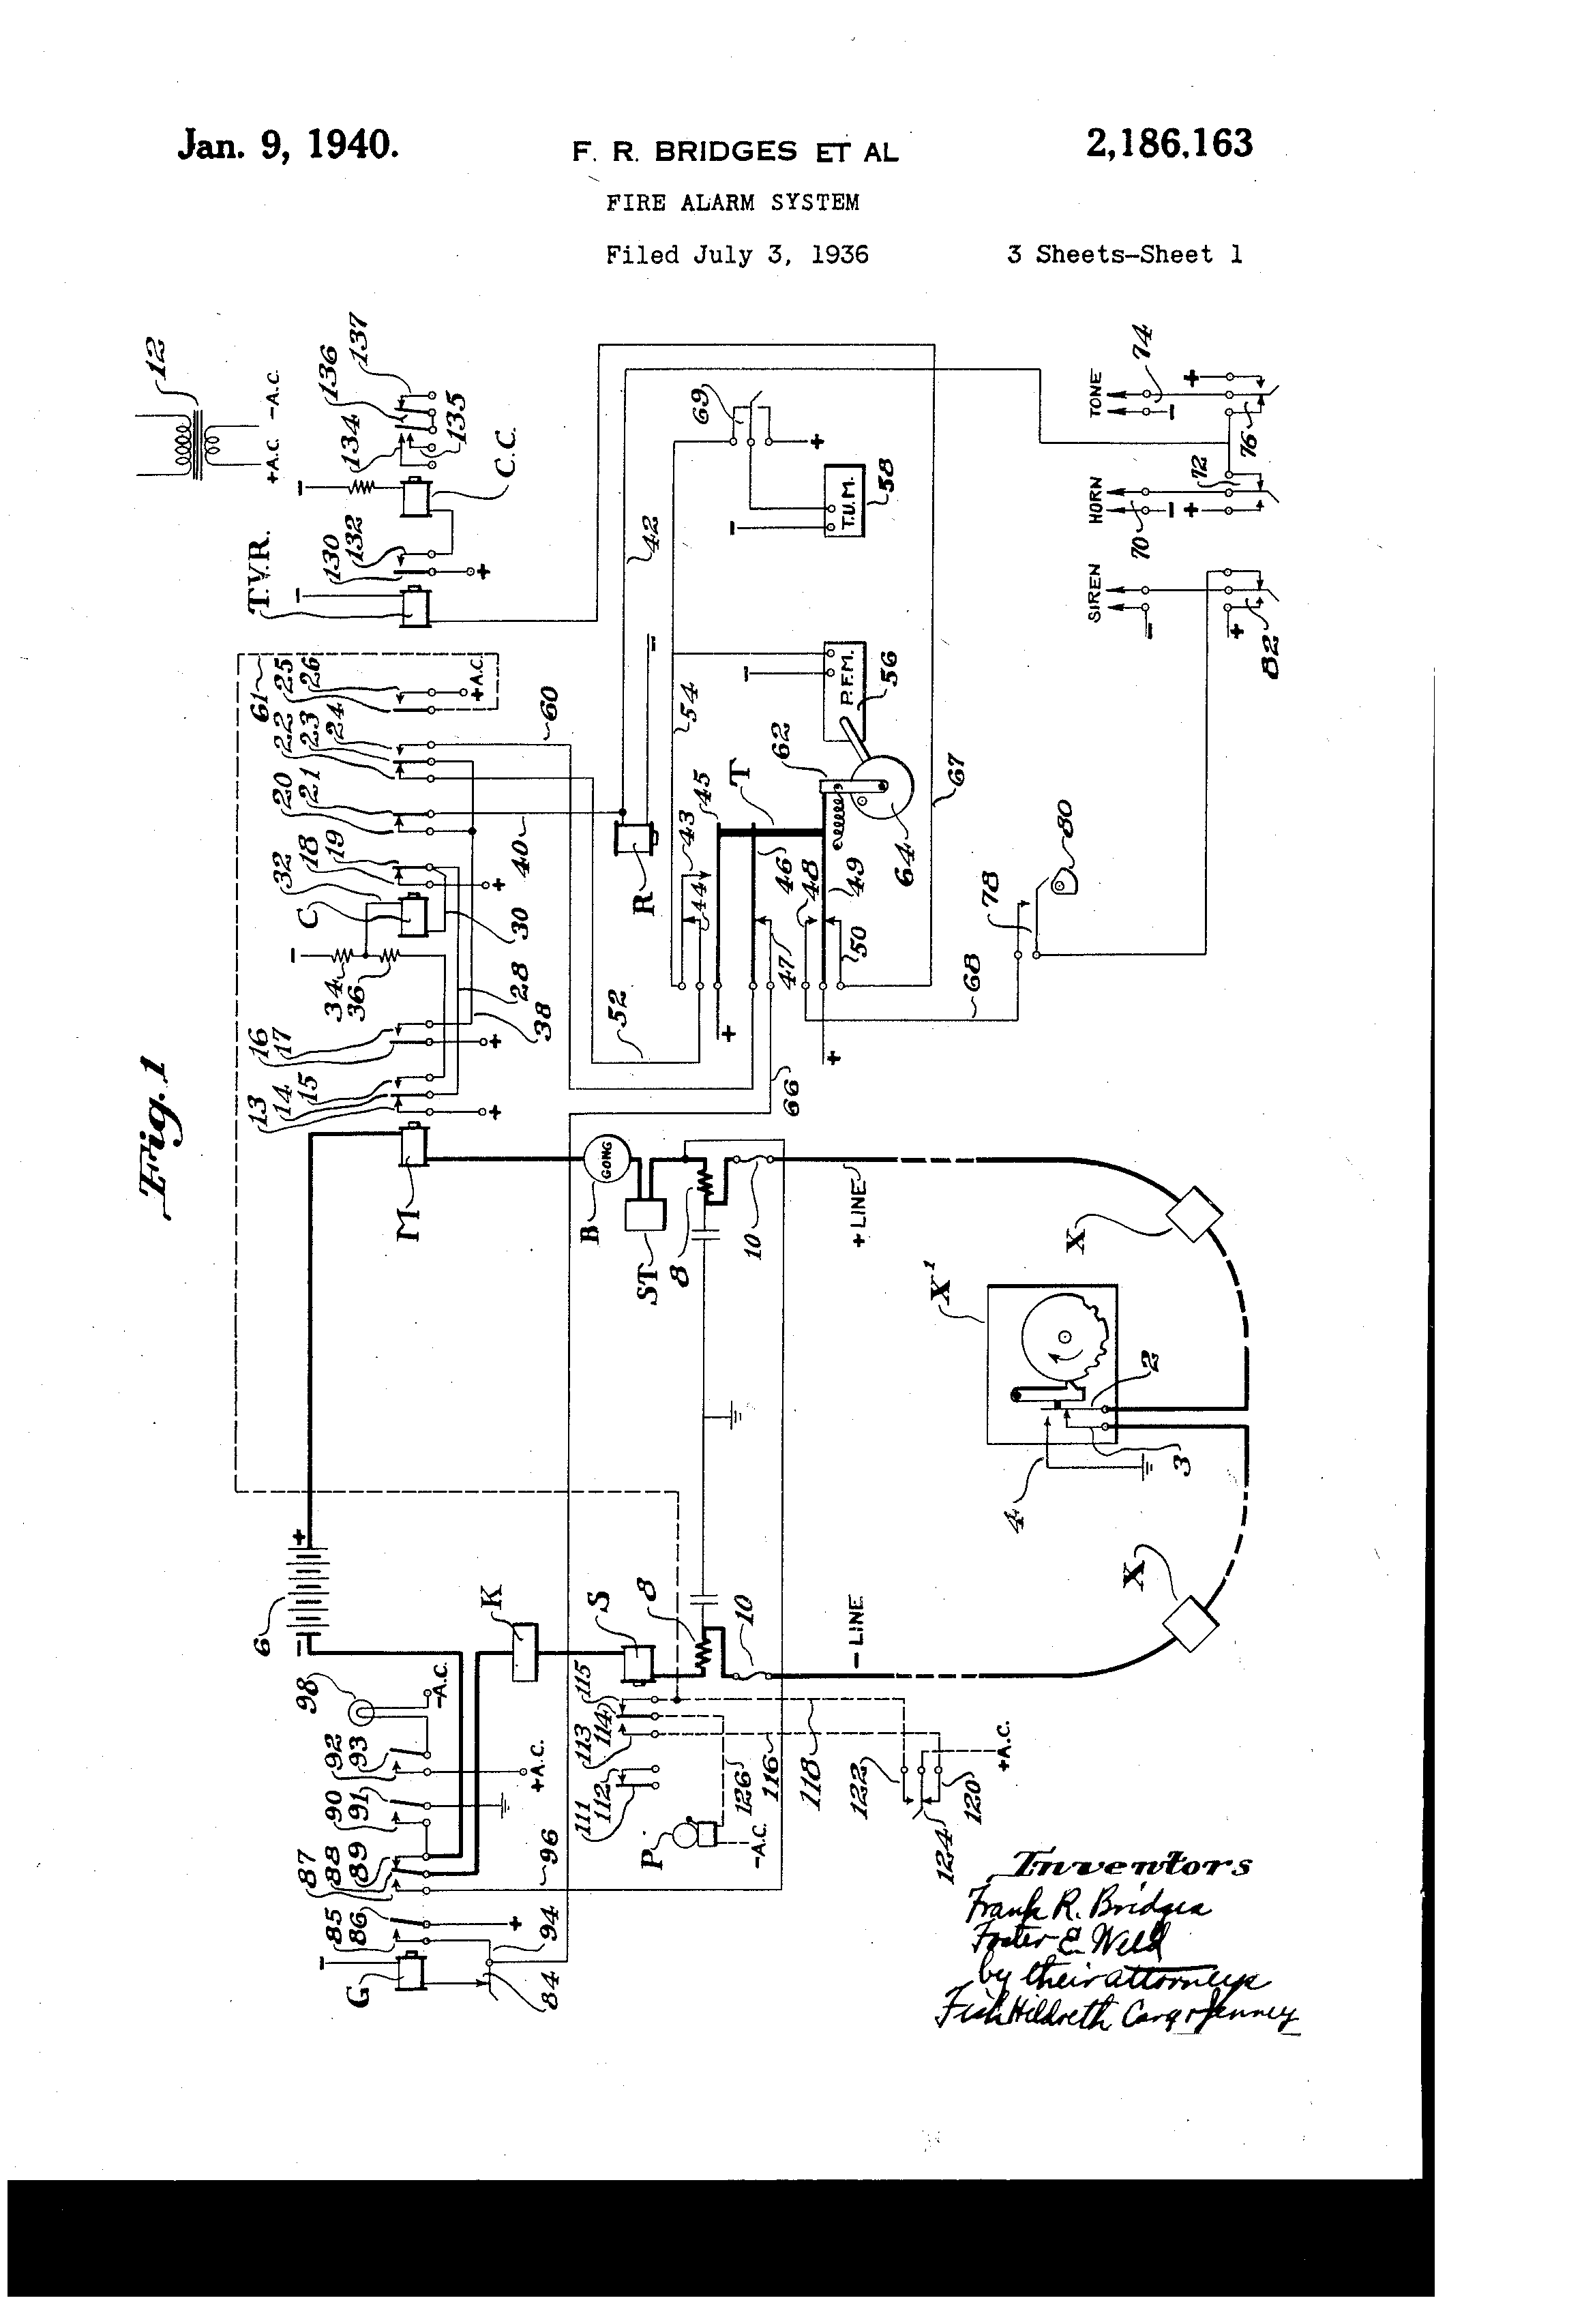 US2186163 0 patent us2186163 fire alarm system google patents gamewell fire alarm box wiring diagram at edmiracle.co